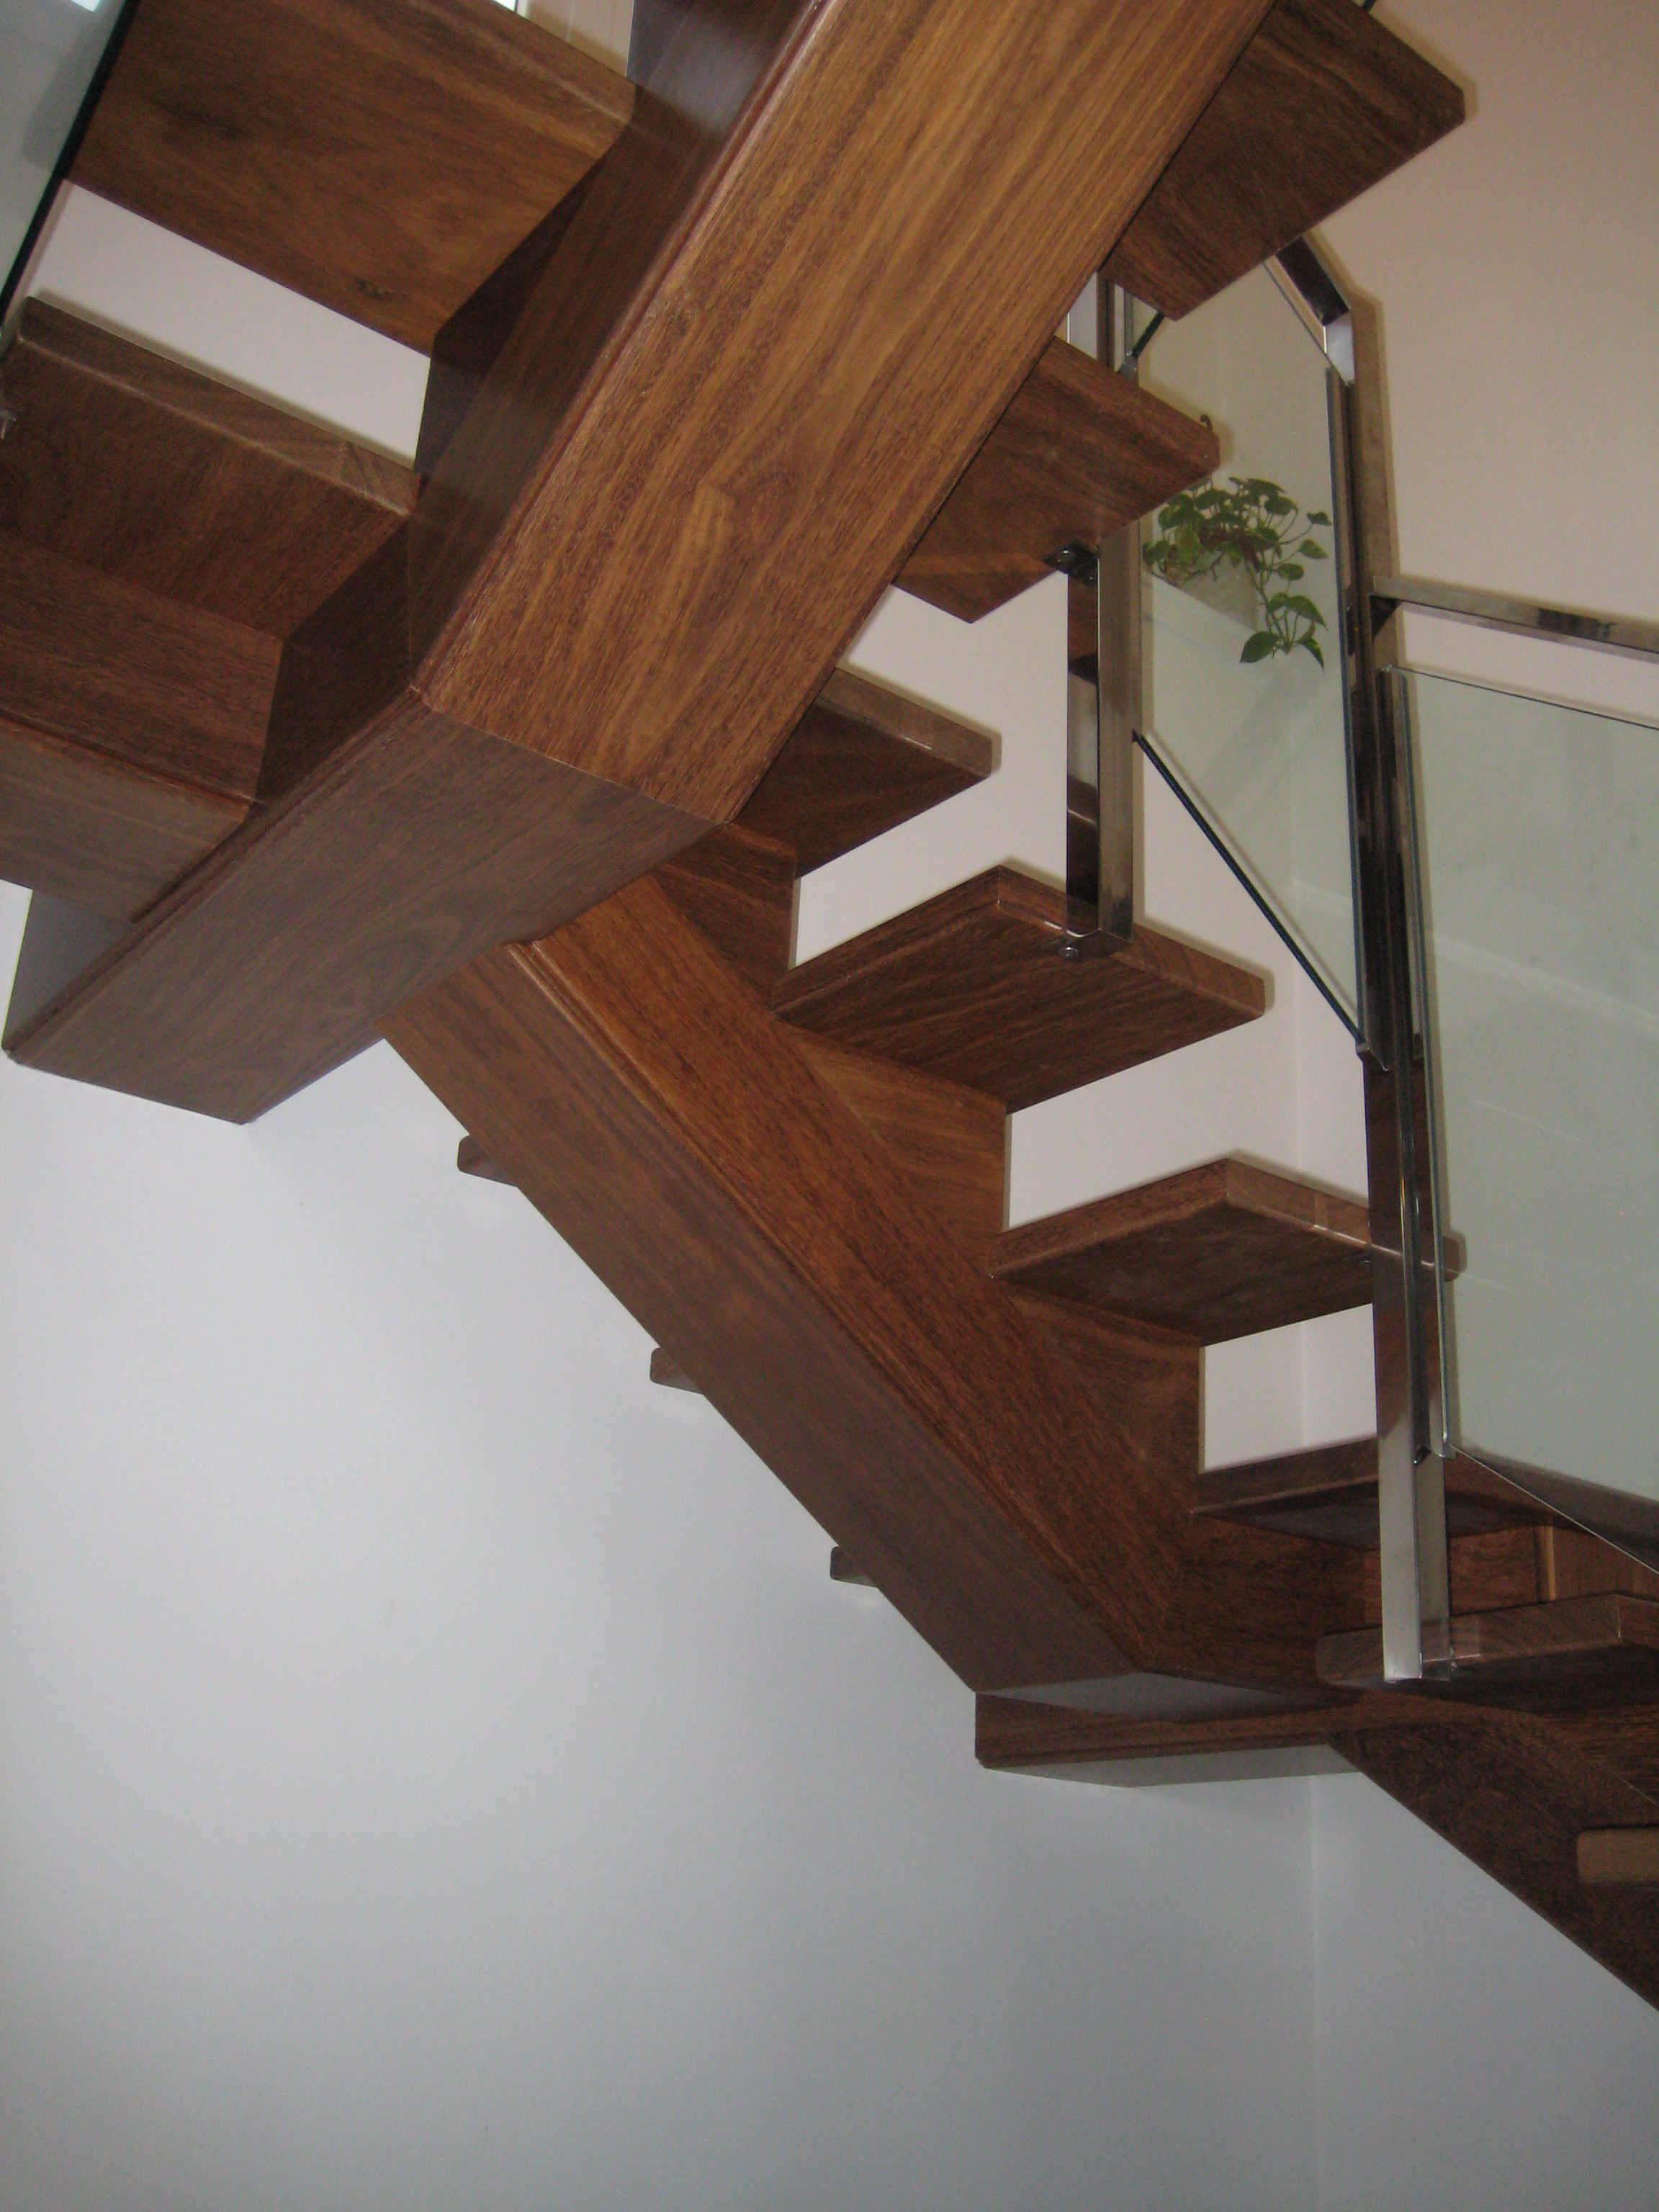 Escalera madera zanca central vettagrupo for Como construir una escalera metalica